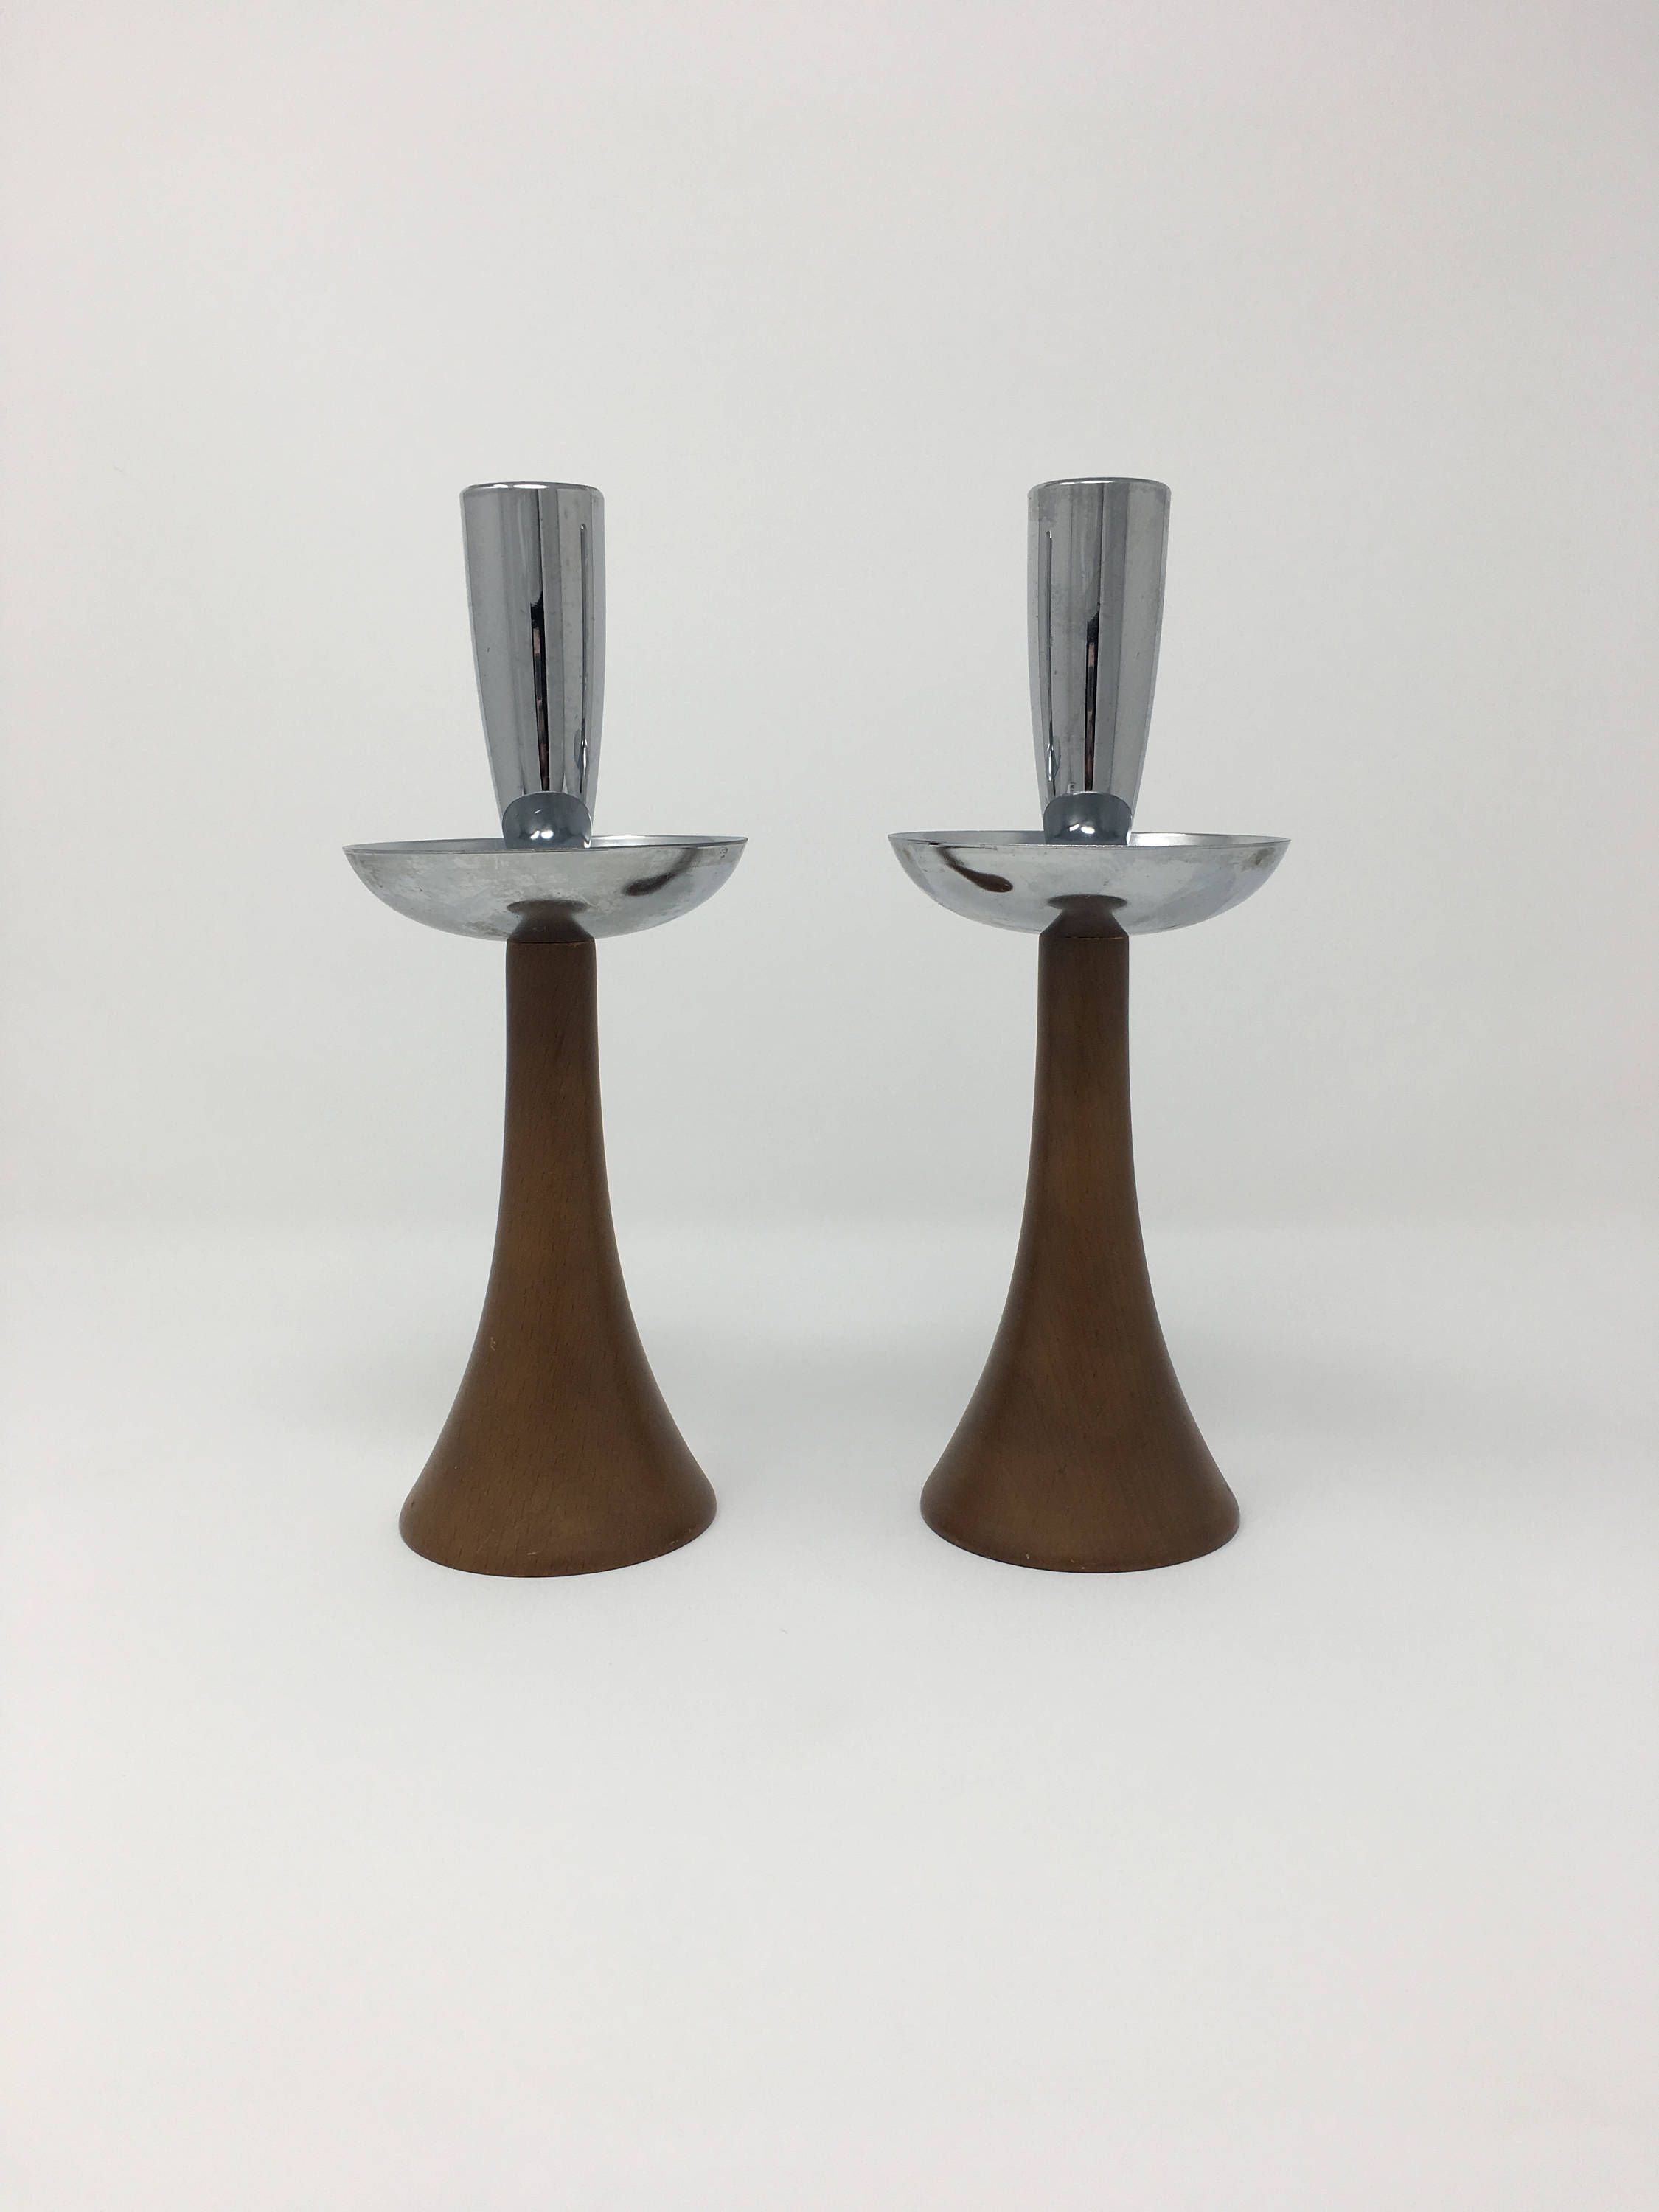 Wooden Candle Holders Taper Set Modern Vintage Candlestick Holder Room Decor Home Accents By